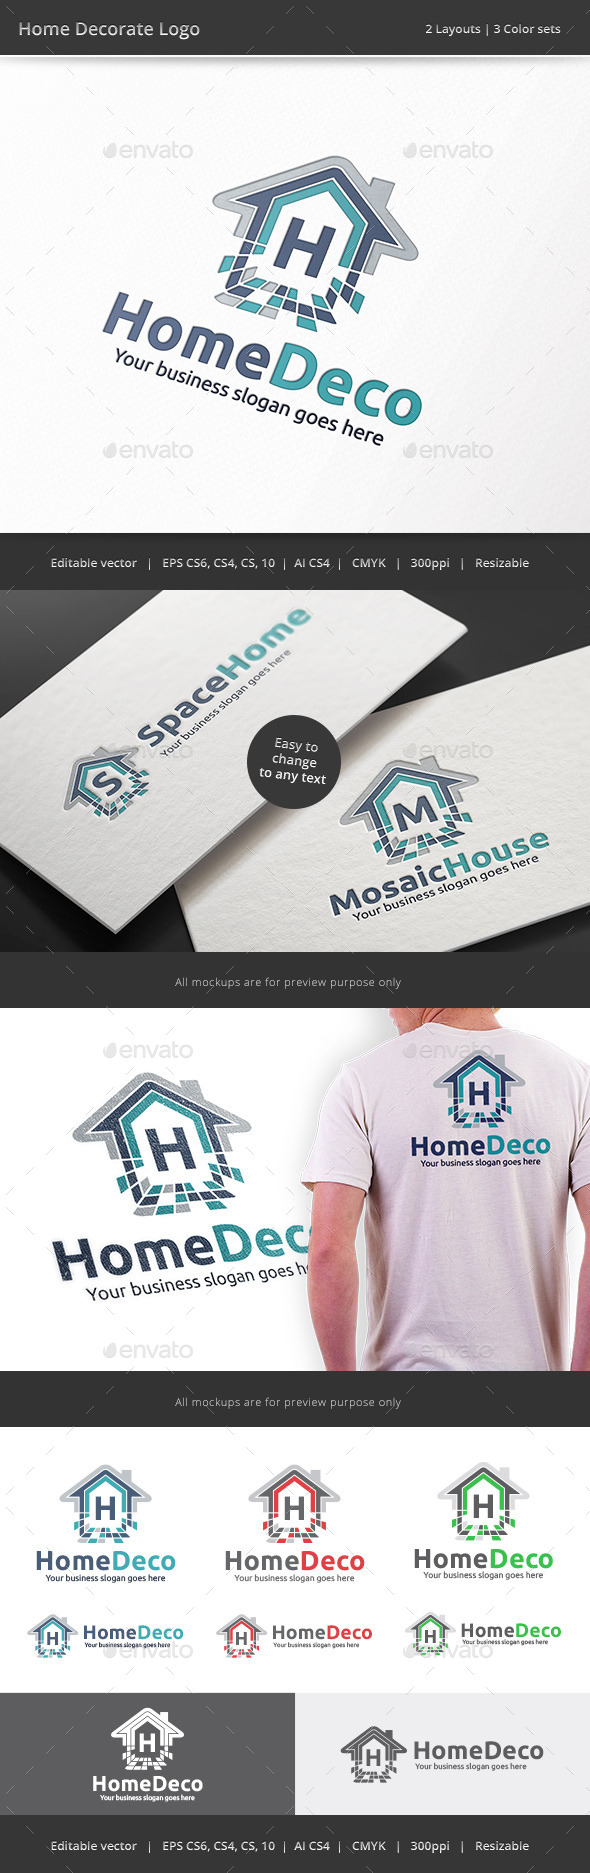 GraphicRiver Home Decorate Logo 9013188